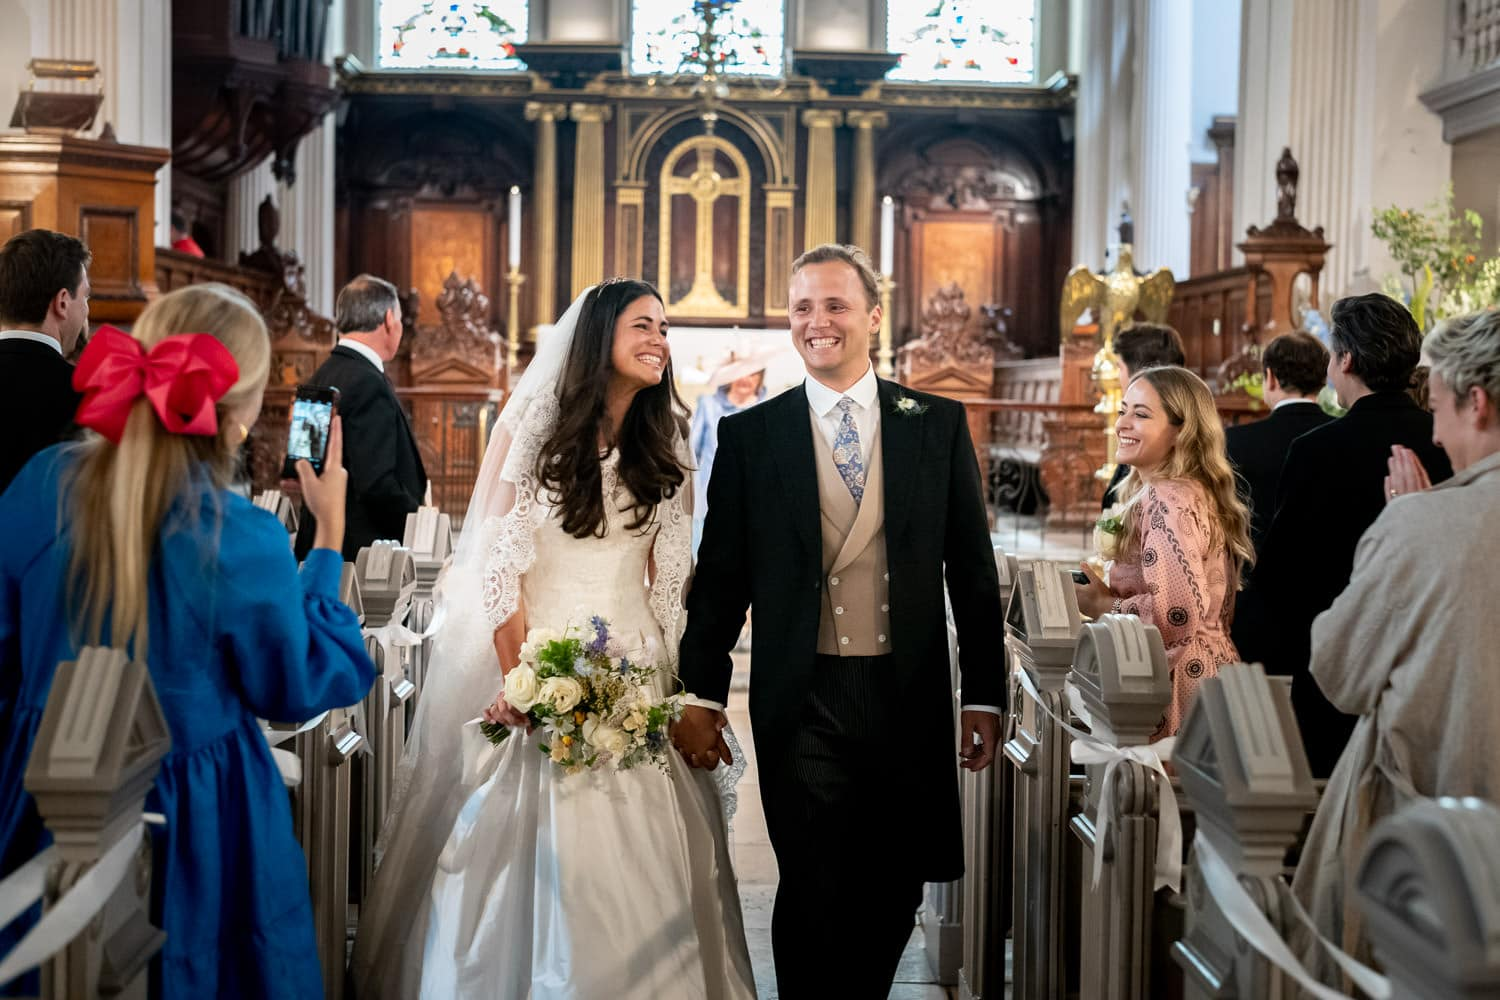 Bride and groom photographed in London church